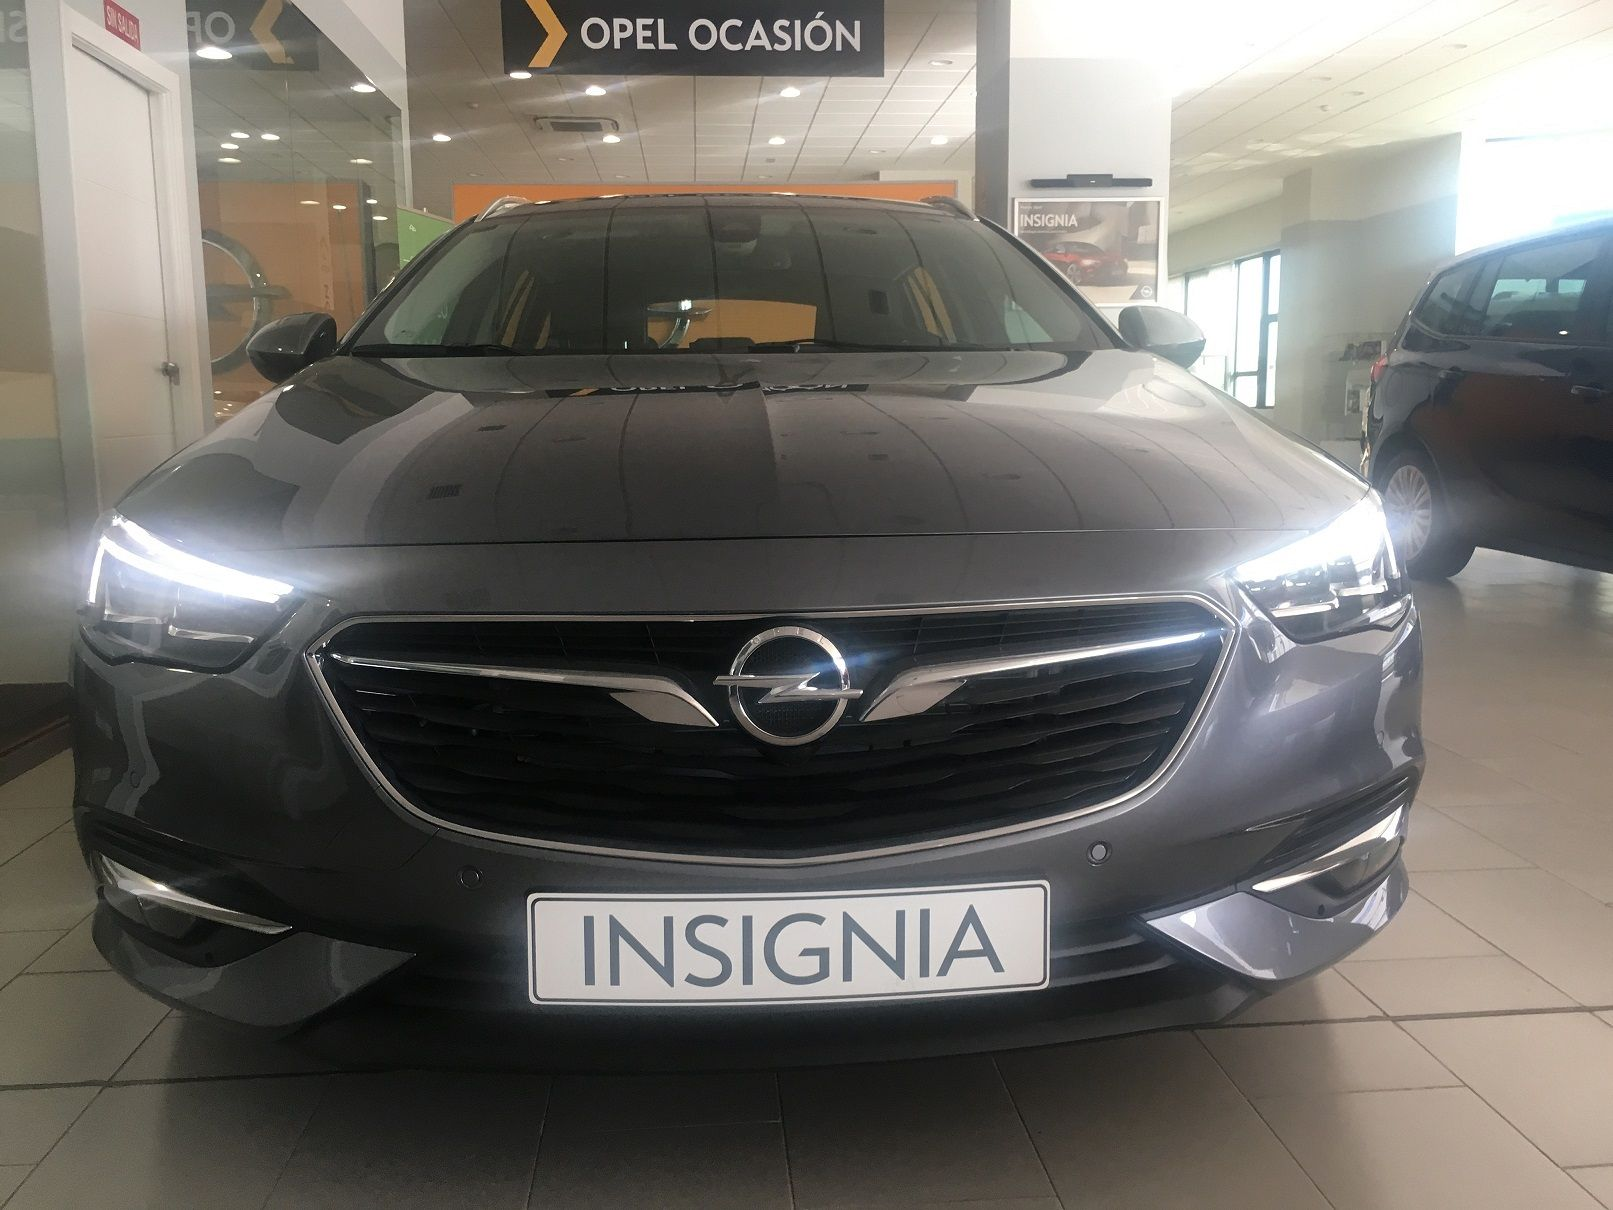 OPEL Insignia ST 2.0 CDTi Turbo D Excellence 5p. 28.400 €